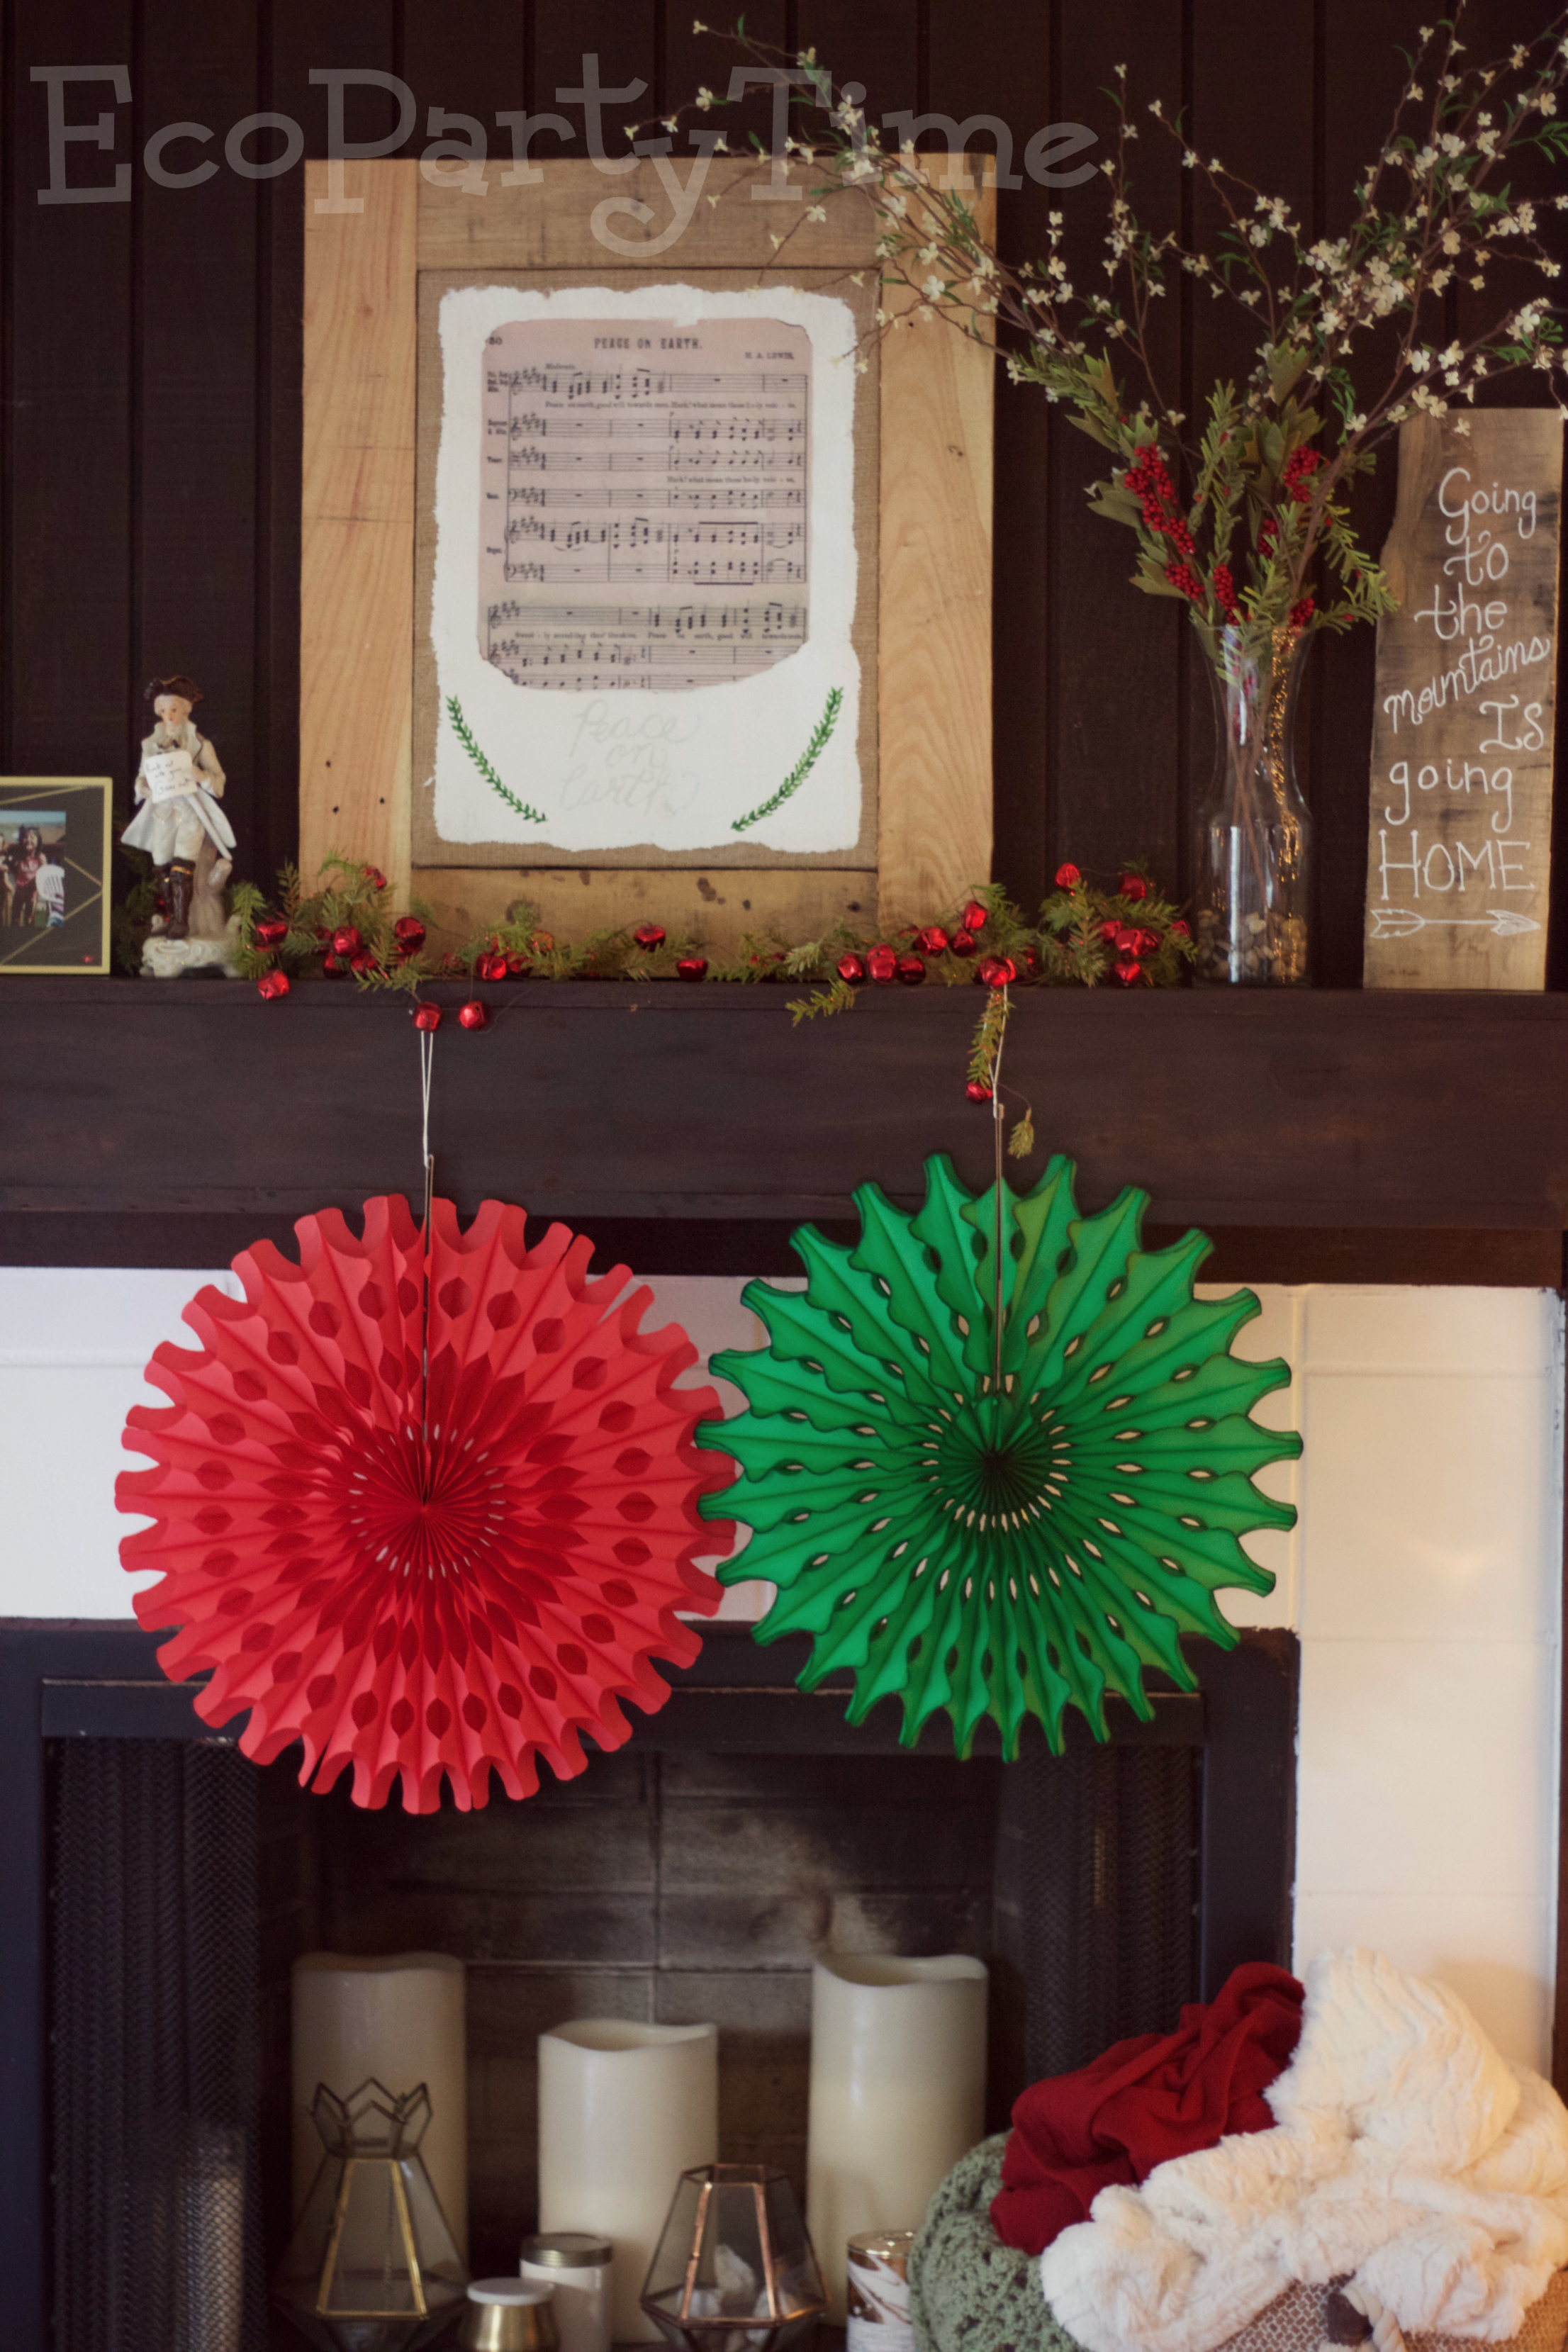 Ecopartytime: Eco-Friendly Christmas Decor